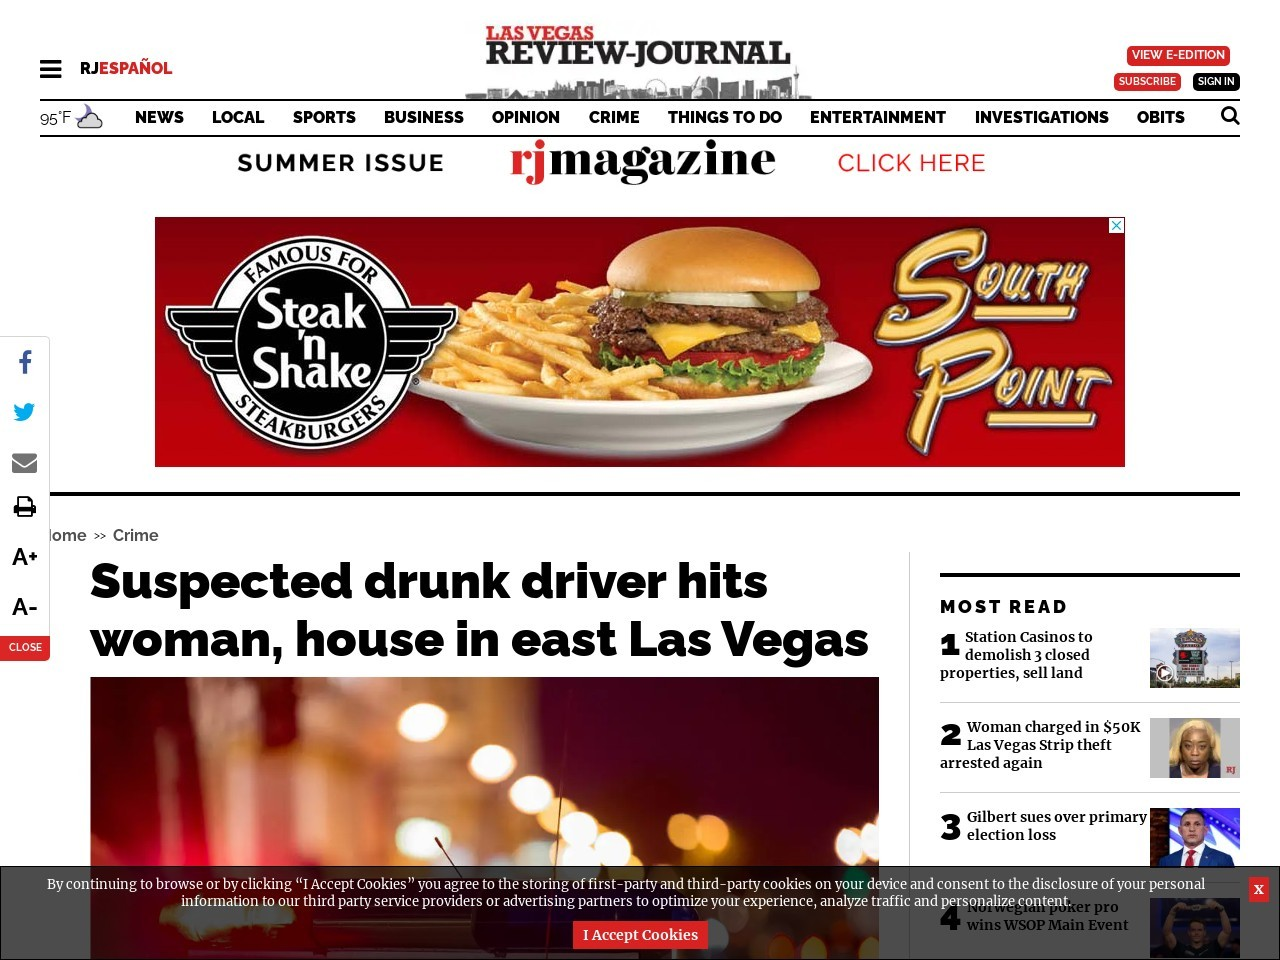 Suspected drunk driver hits woman, house in east Las Vegas